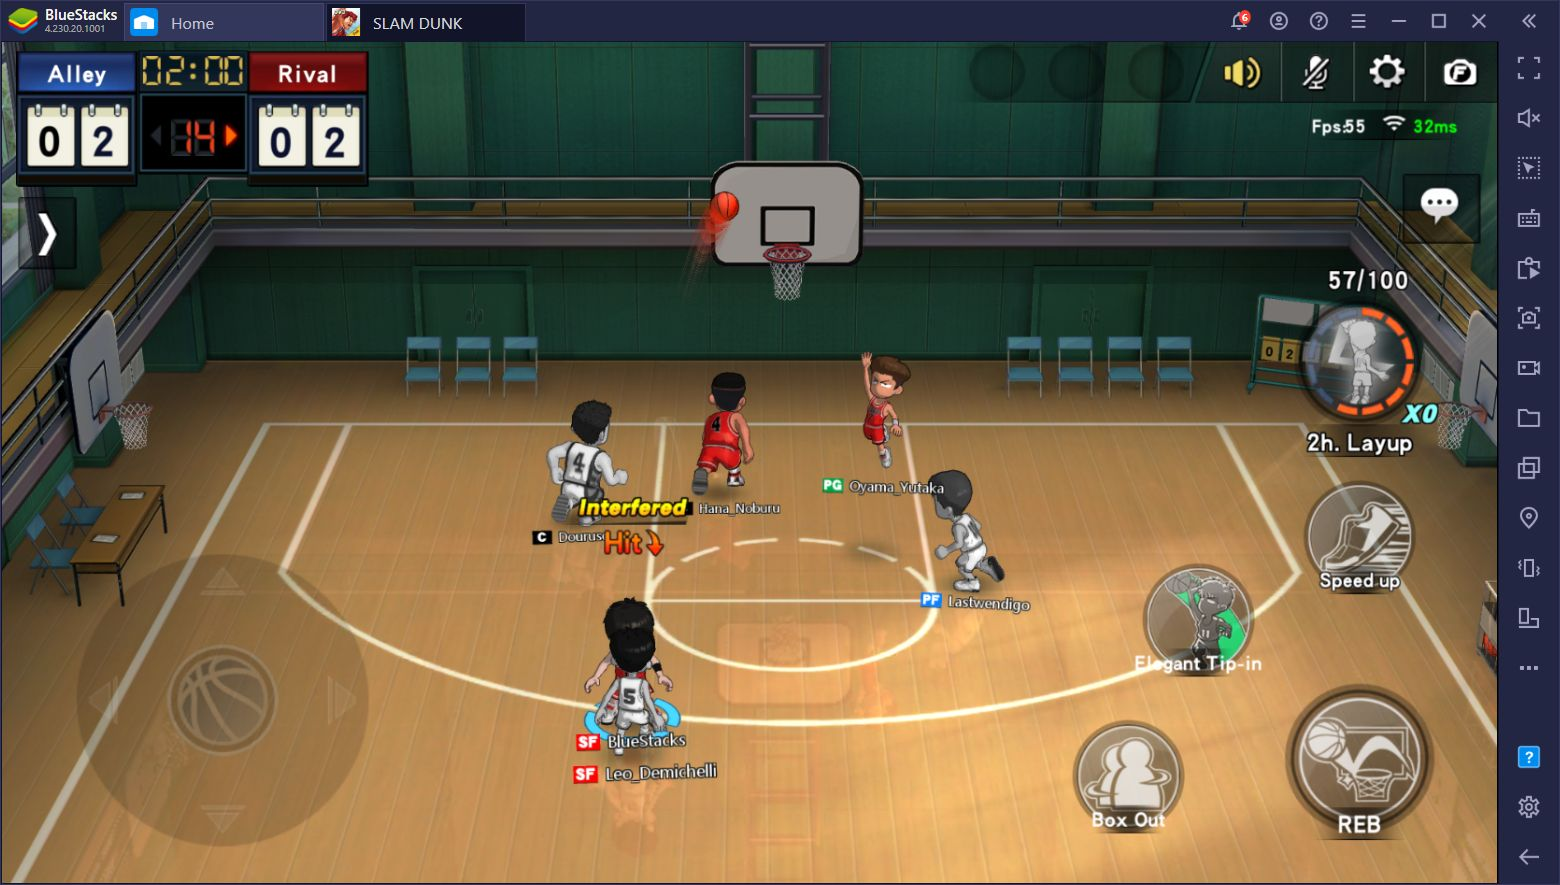 Slam Dunk Tips, Tricks, and Strategies to Leave Your Enemies in the Dust and Win Matches